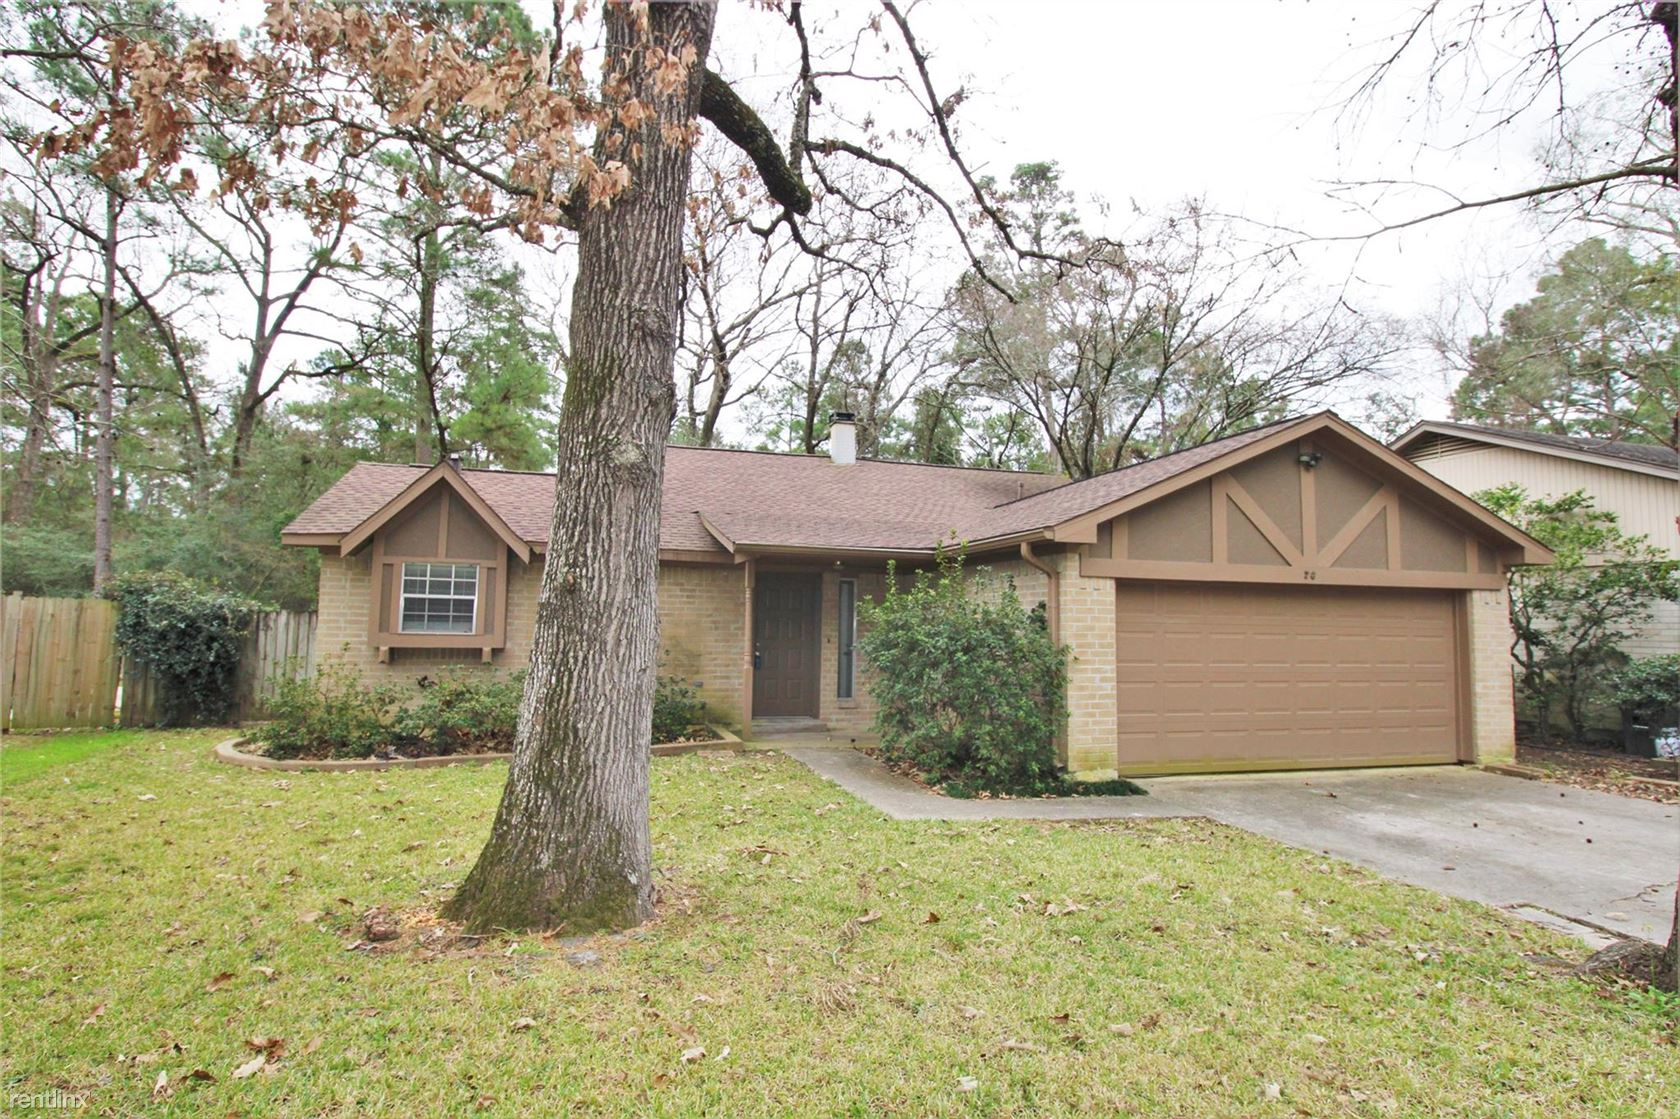 78 S Woodstock Circle Dr, THE WOODLANDS, TX - $1,650